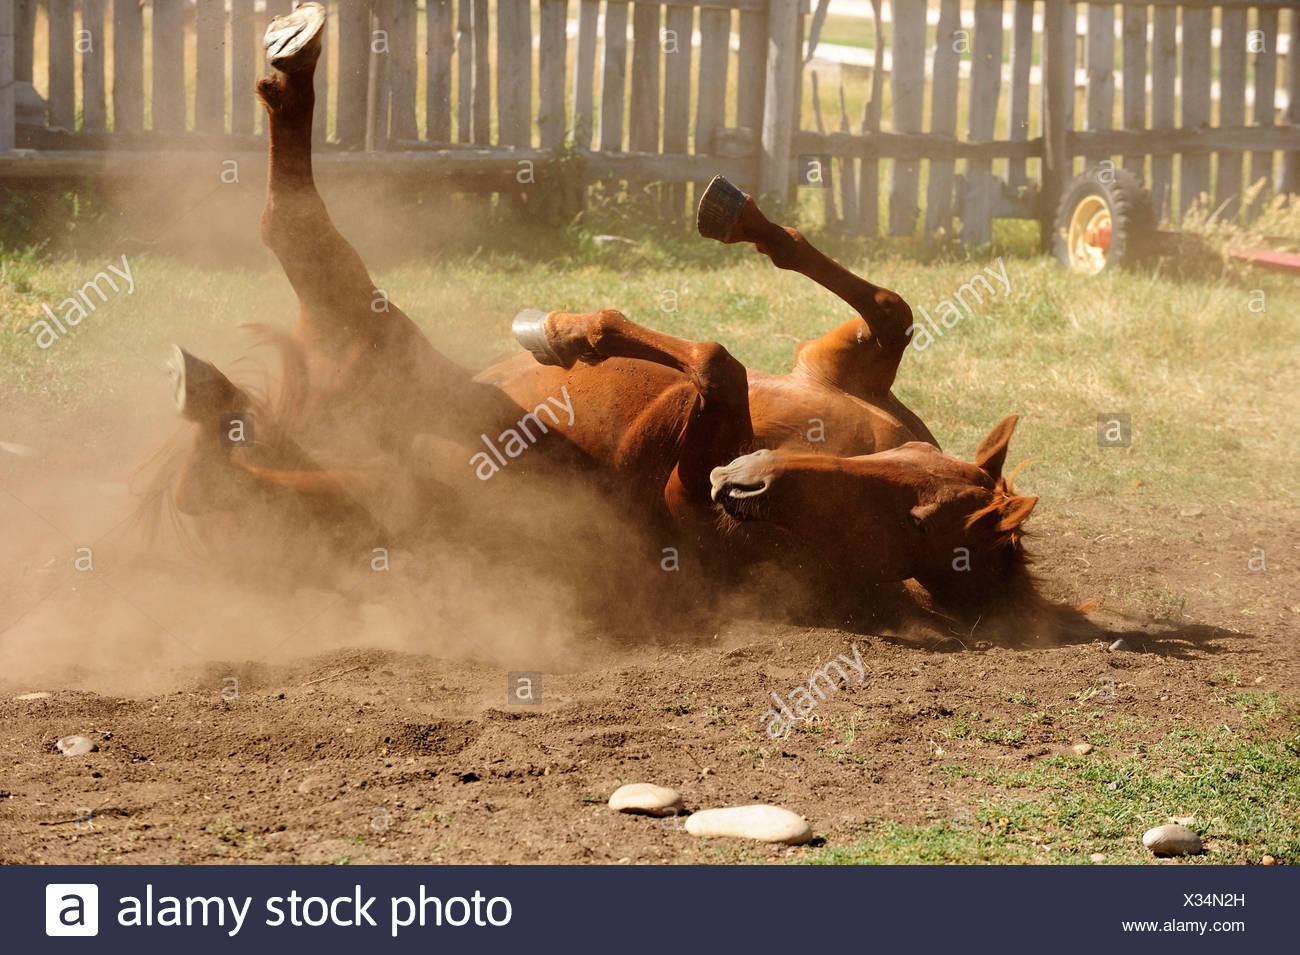 Horse wallowing on the ground in a paddock and whirling up dust in the prairie, Saskatchewan Province, Canada - Stock Image